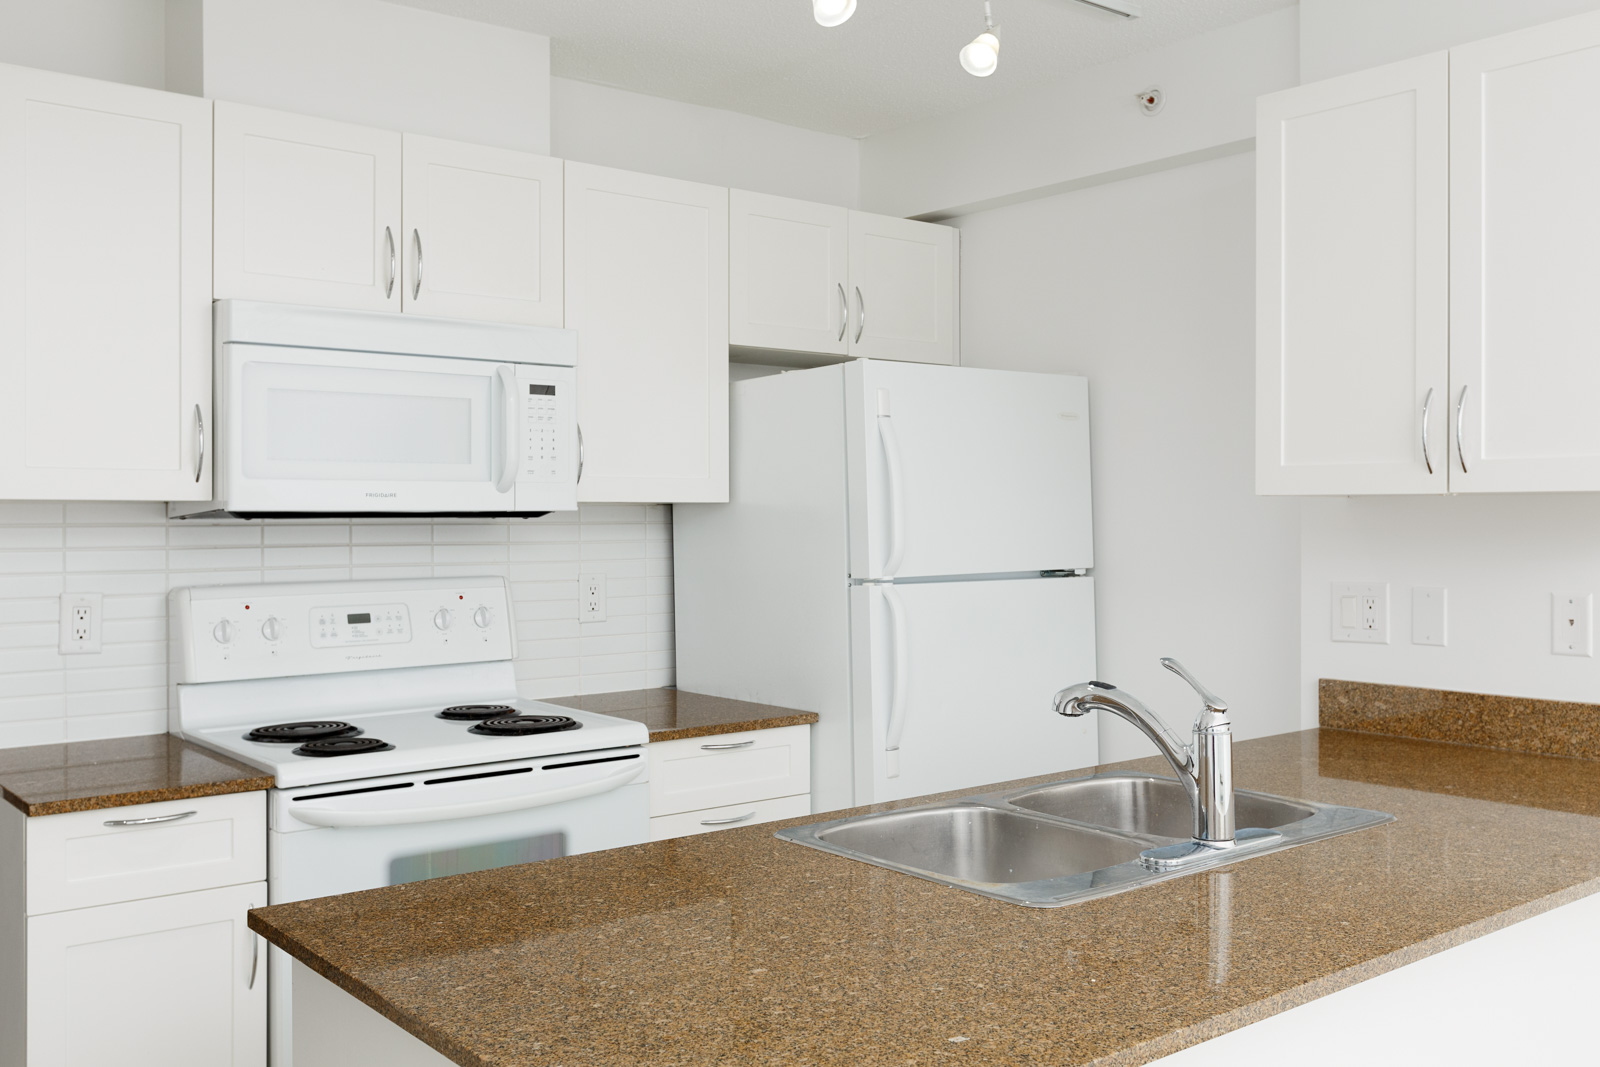 Kitchen inside Downtown Vancouver rental condo.